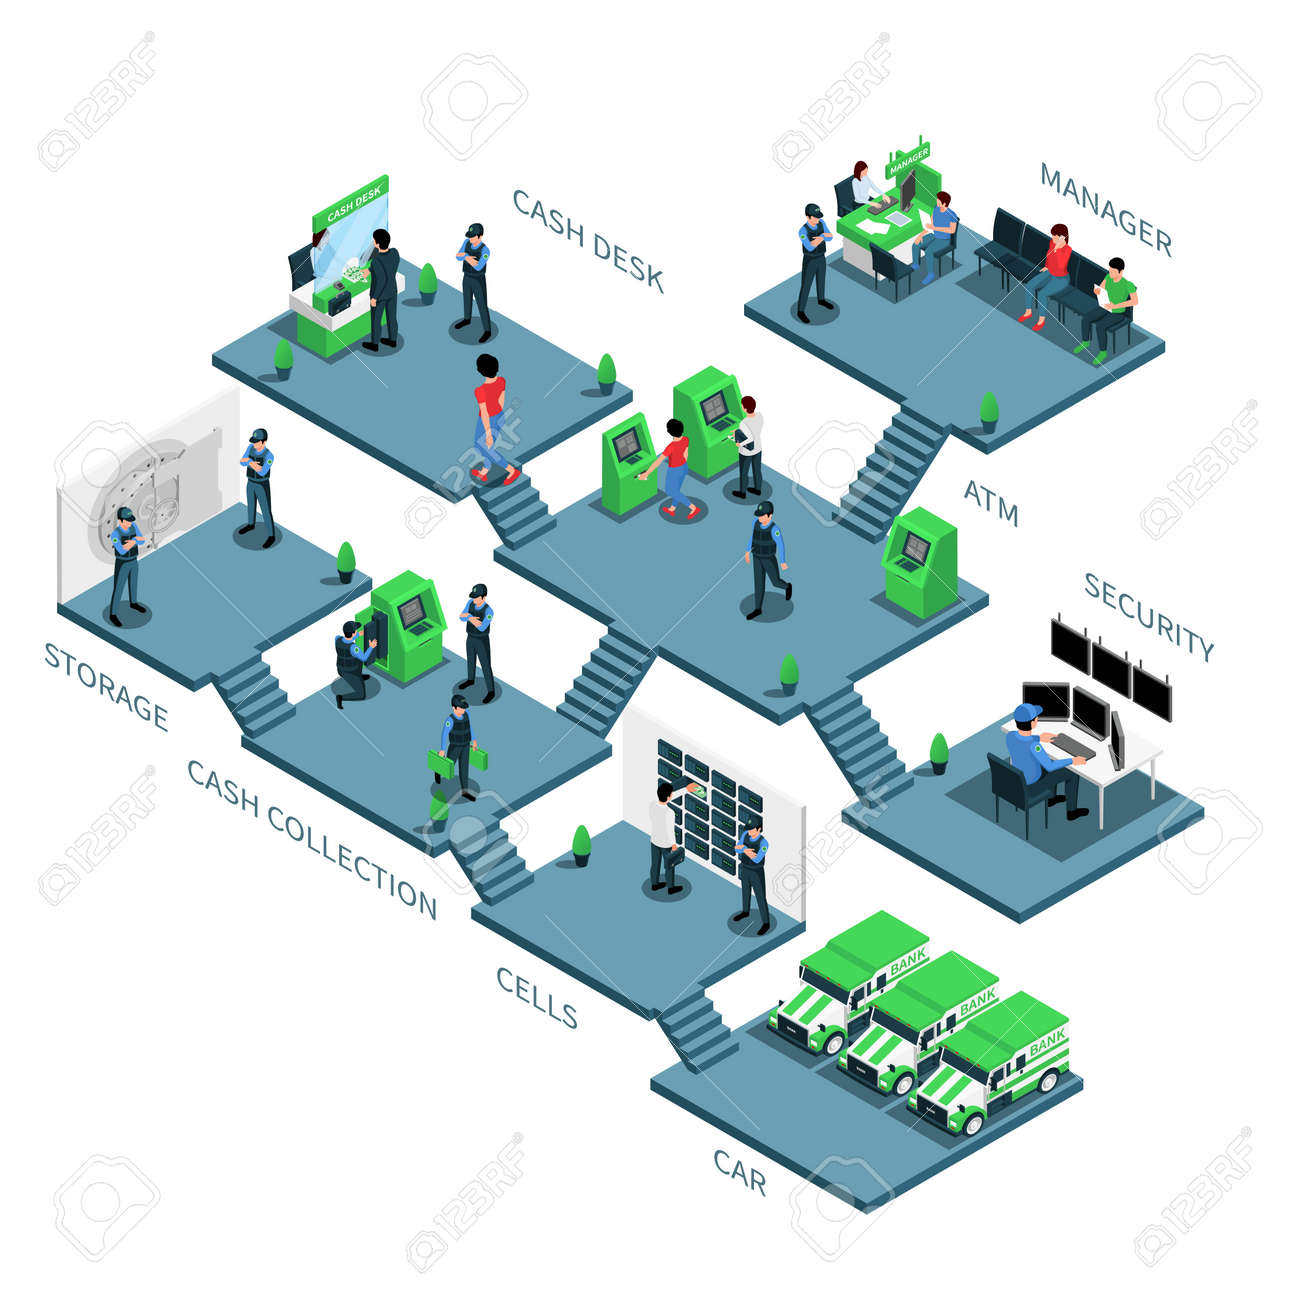 Bank Branch Rooms Isometric Composition - 171636232